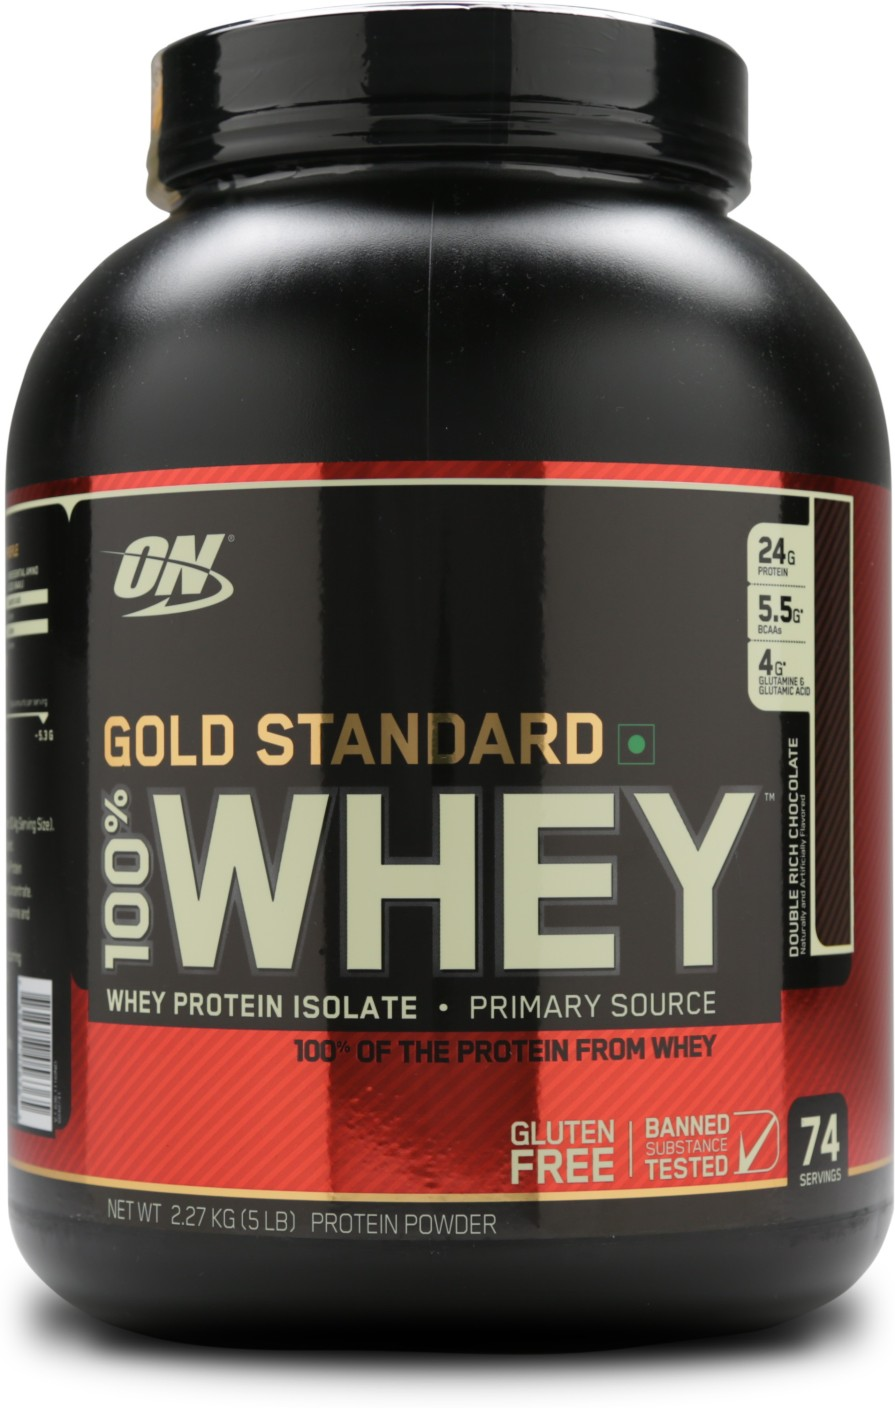 Optimum way protein